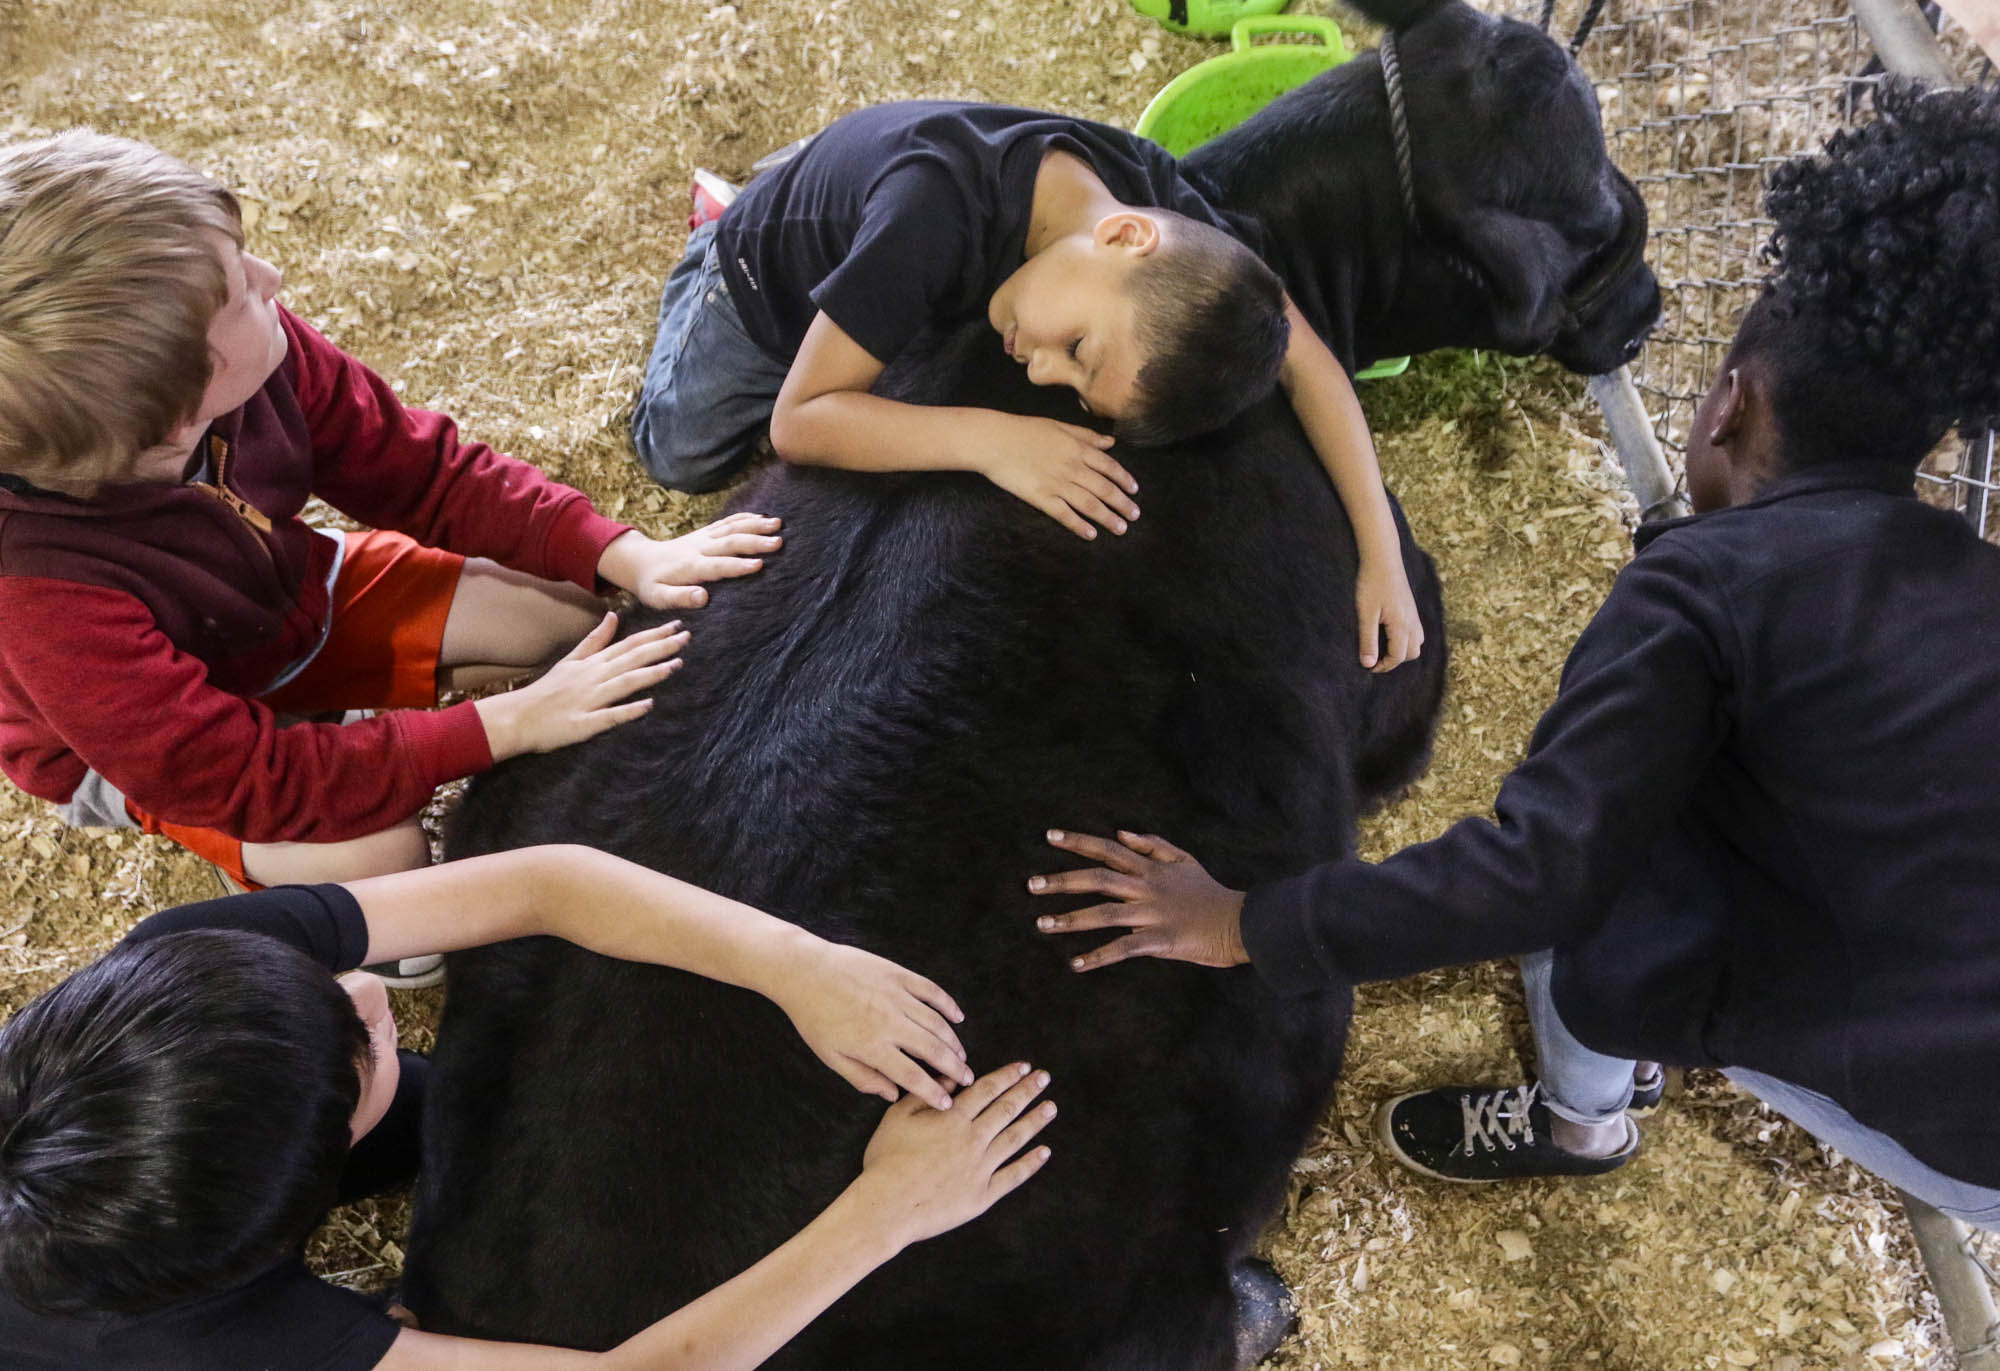 Jordan Saenz lays across a heifer alongside fellow Rowland Elementary School students during the Victoria County Farm Bureau 3rd annual Ag Day field trip at the Victoria Community Center in Victoria, Texas, on April 12, 2019.